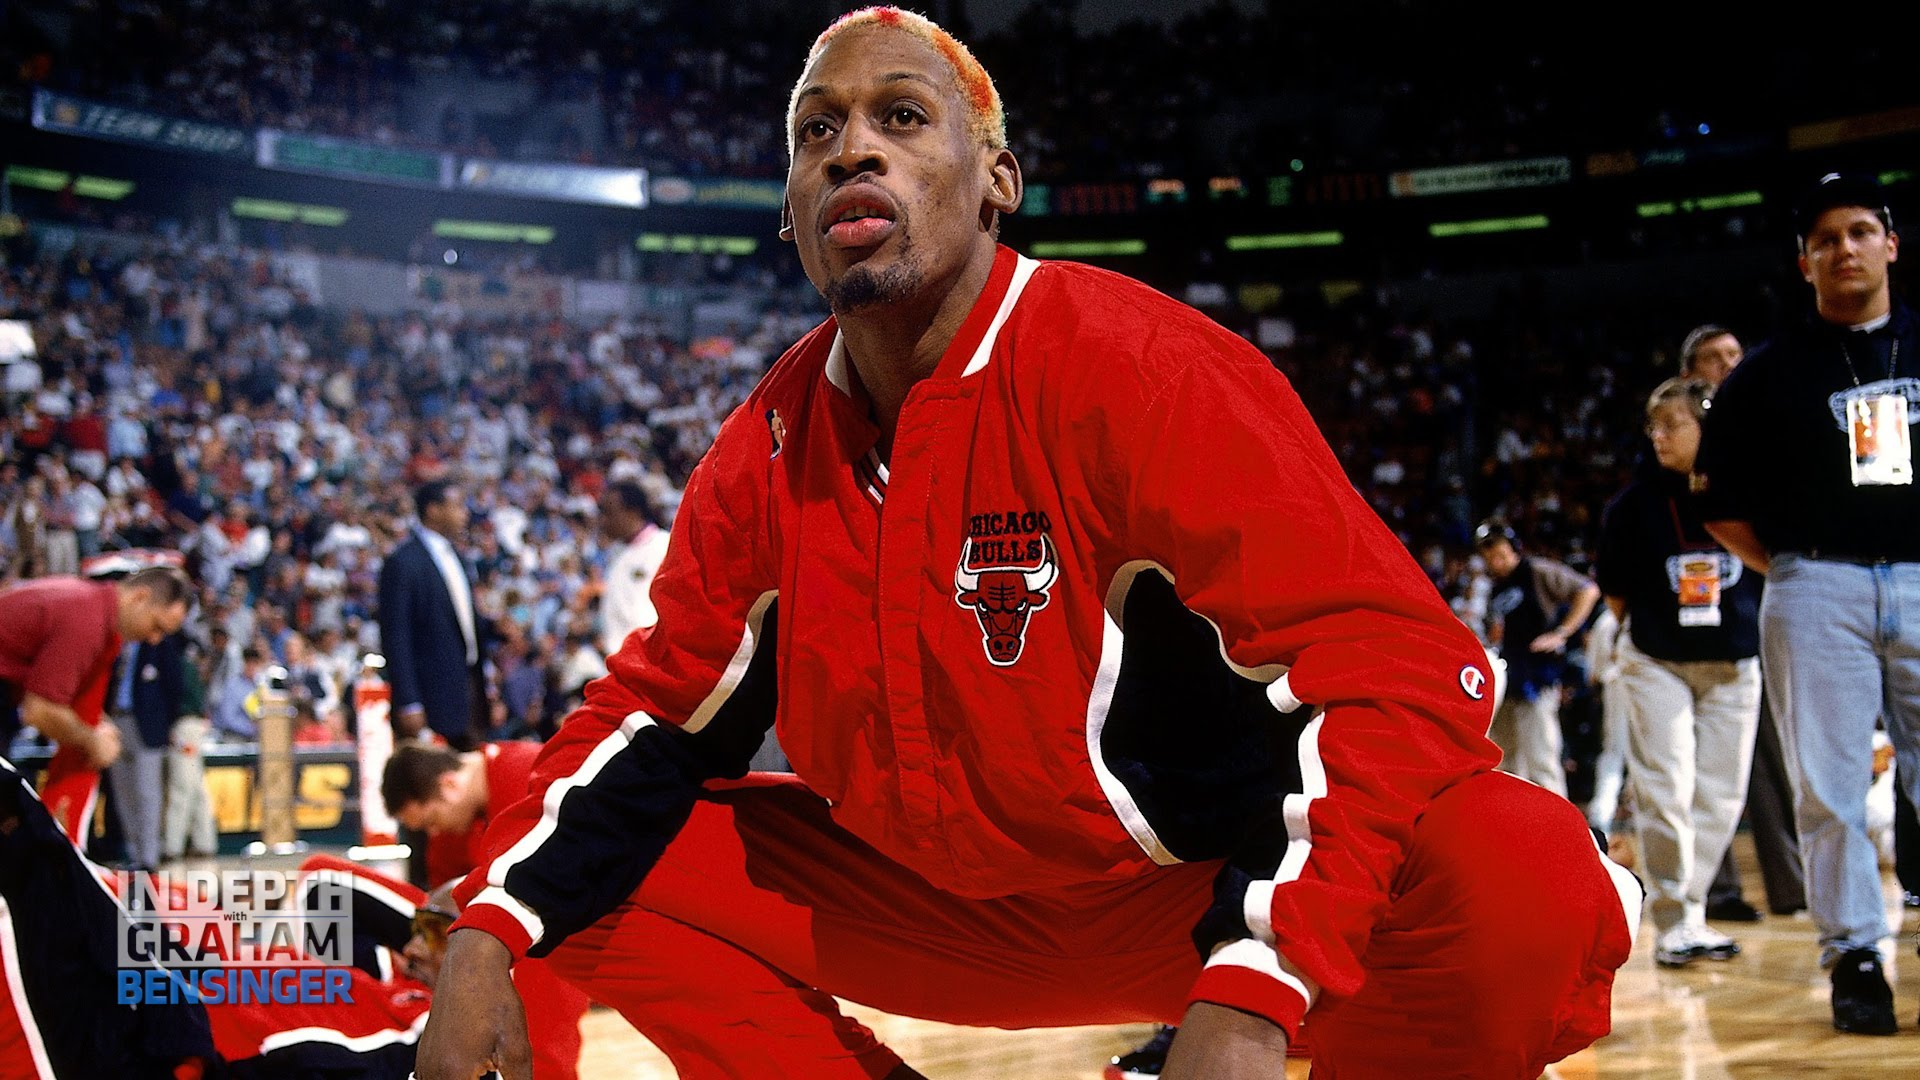 Dennis Rodman says he never talked to Michael Jordan or Scottie Pippen